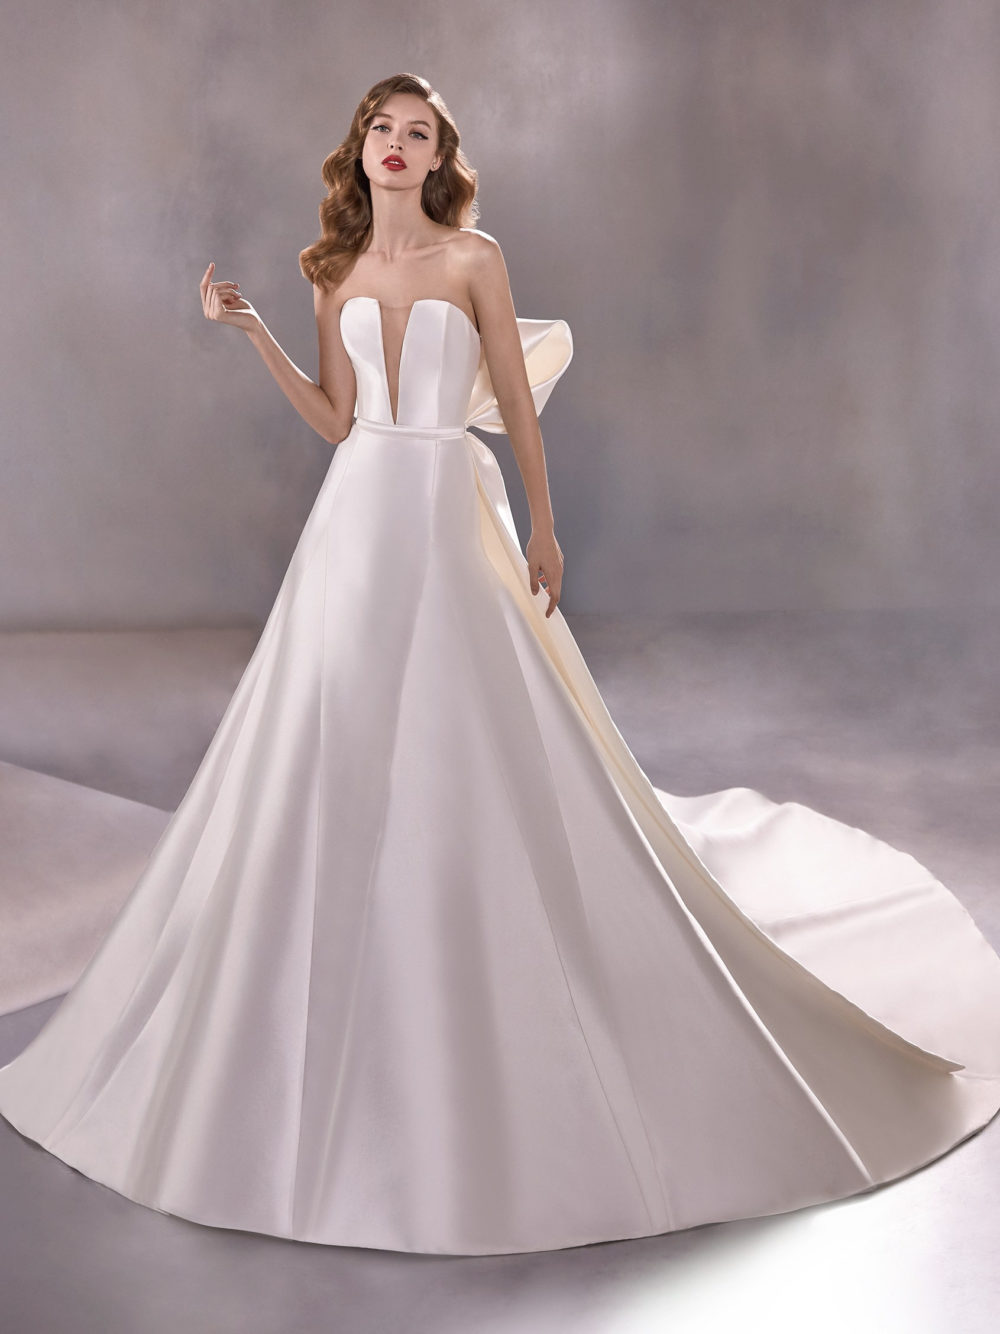 Pronovias Atelier Collection Estrella Wedding Gown Dress 2020